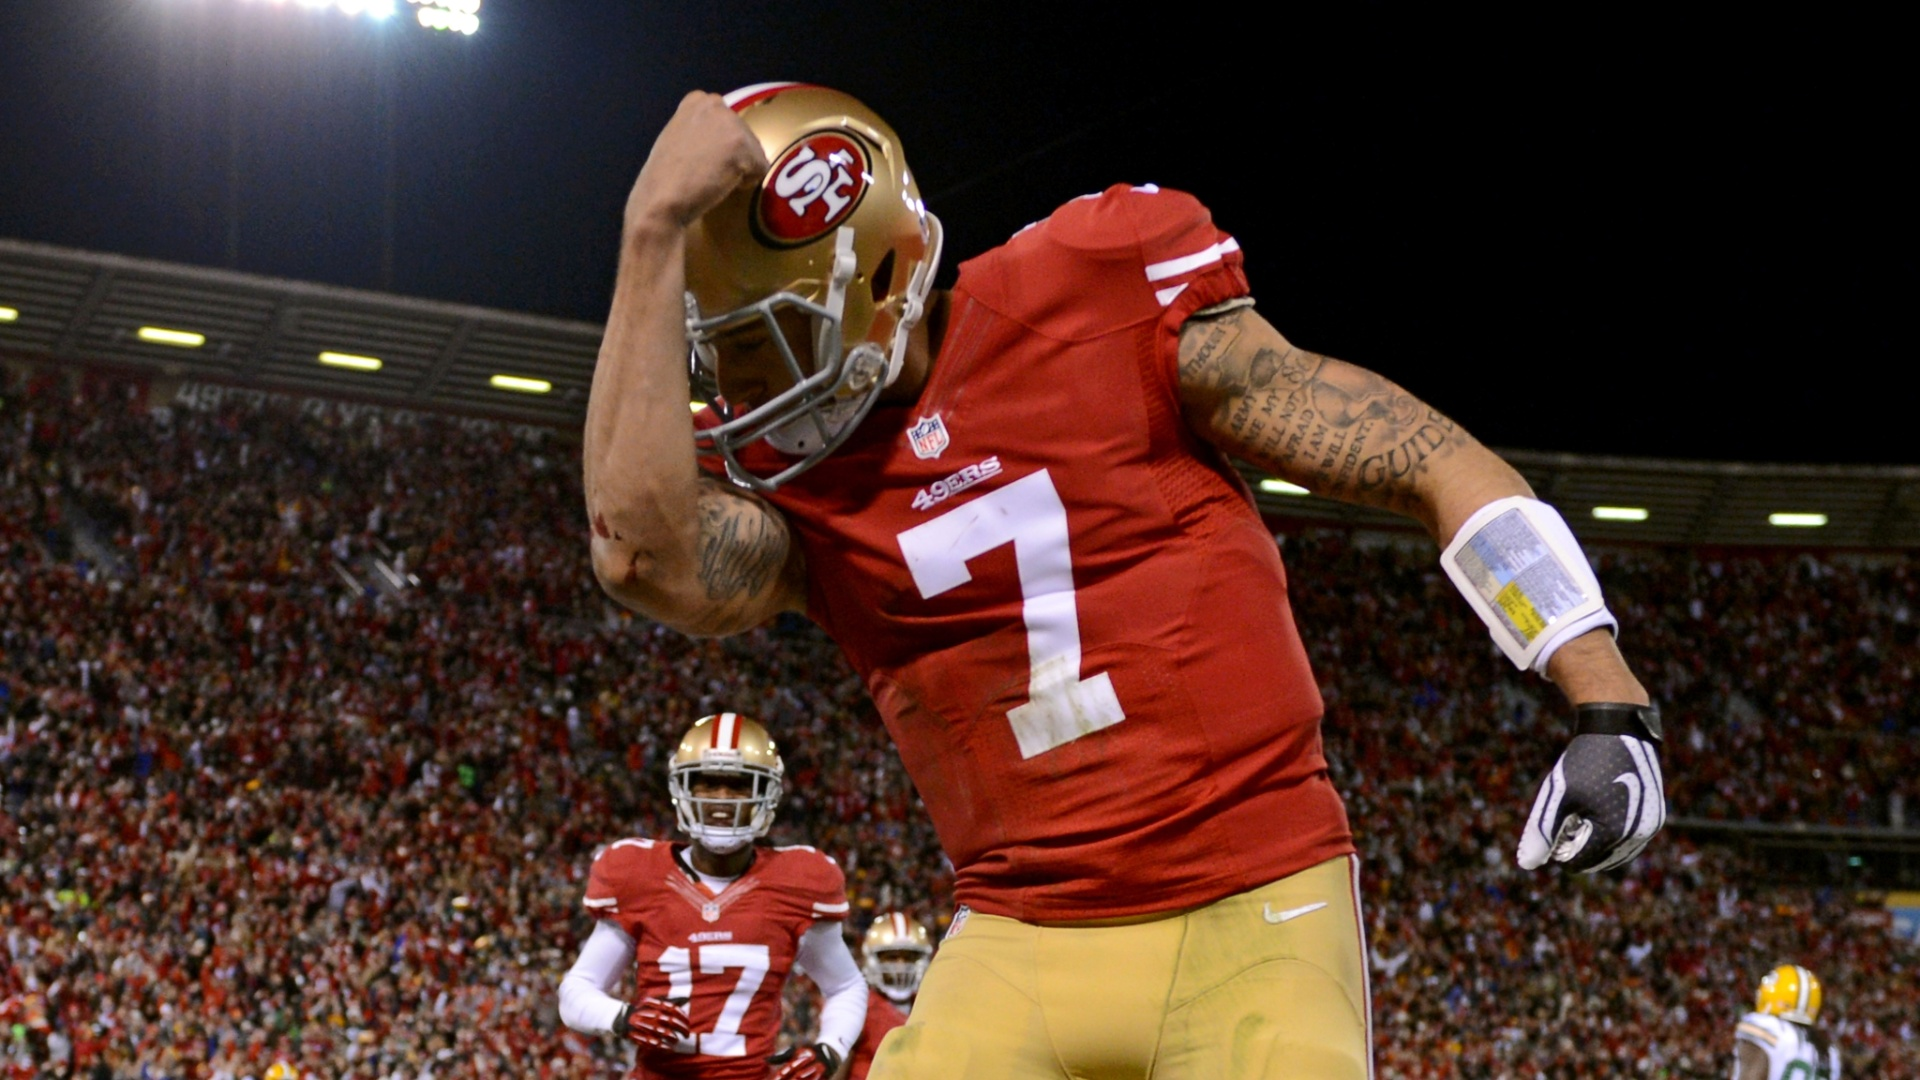 Colin Kaepernick, quarterback do San Francisco 49ers, faz o kaepernicking